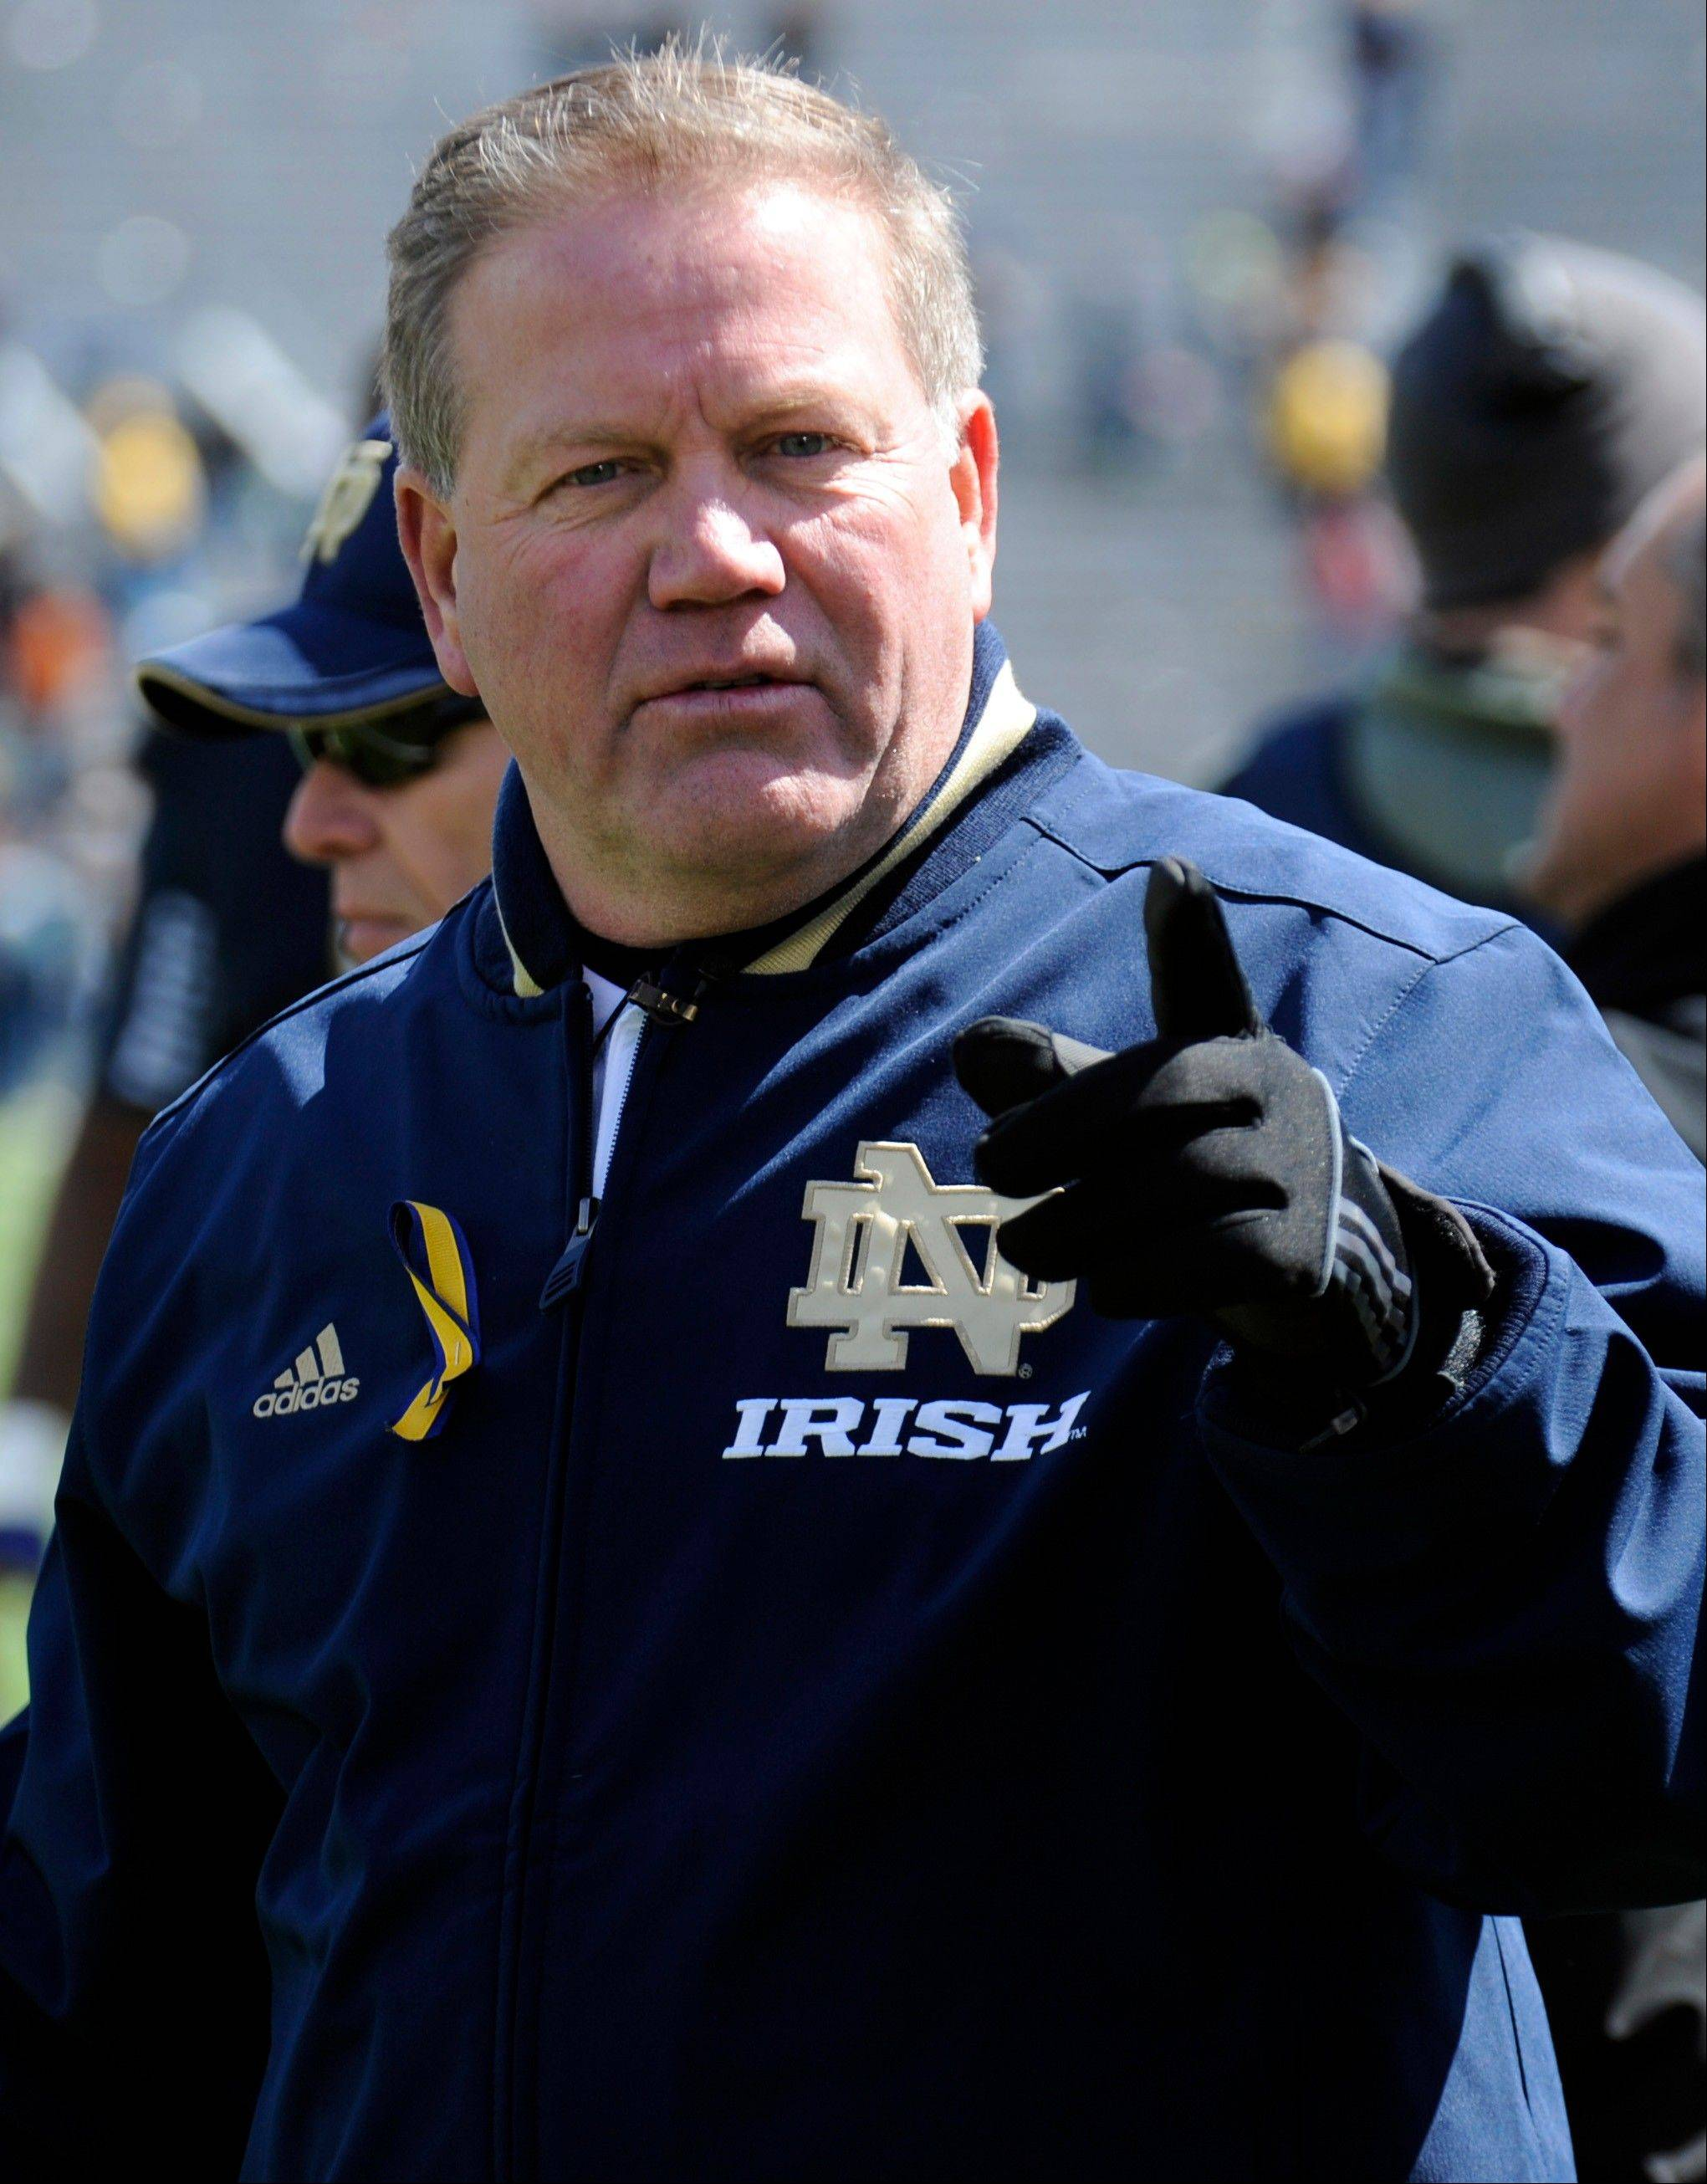 Notre Dame coach Brian Kelly heads off the field after the Blue-Gold spring game in South Bend, Ind. Kelly thinks the Irish�s recent problems are behind them.